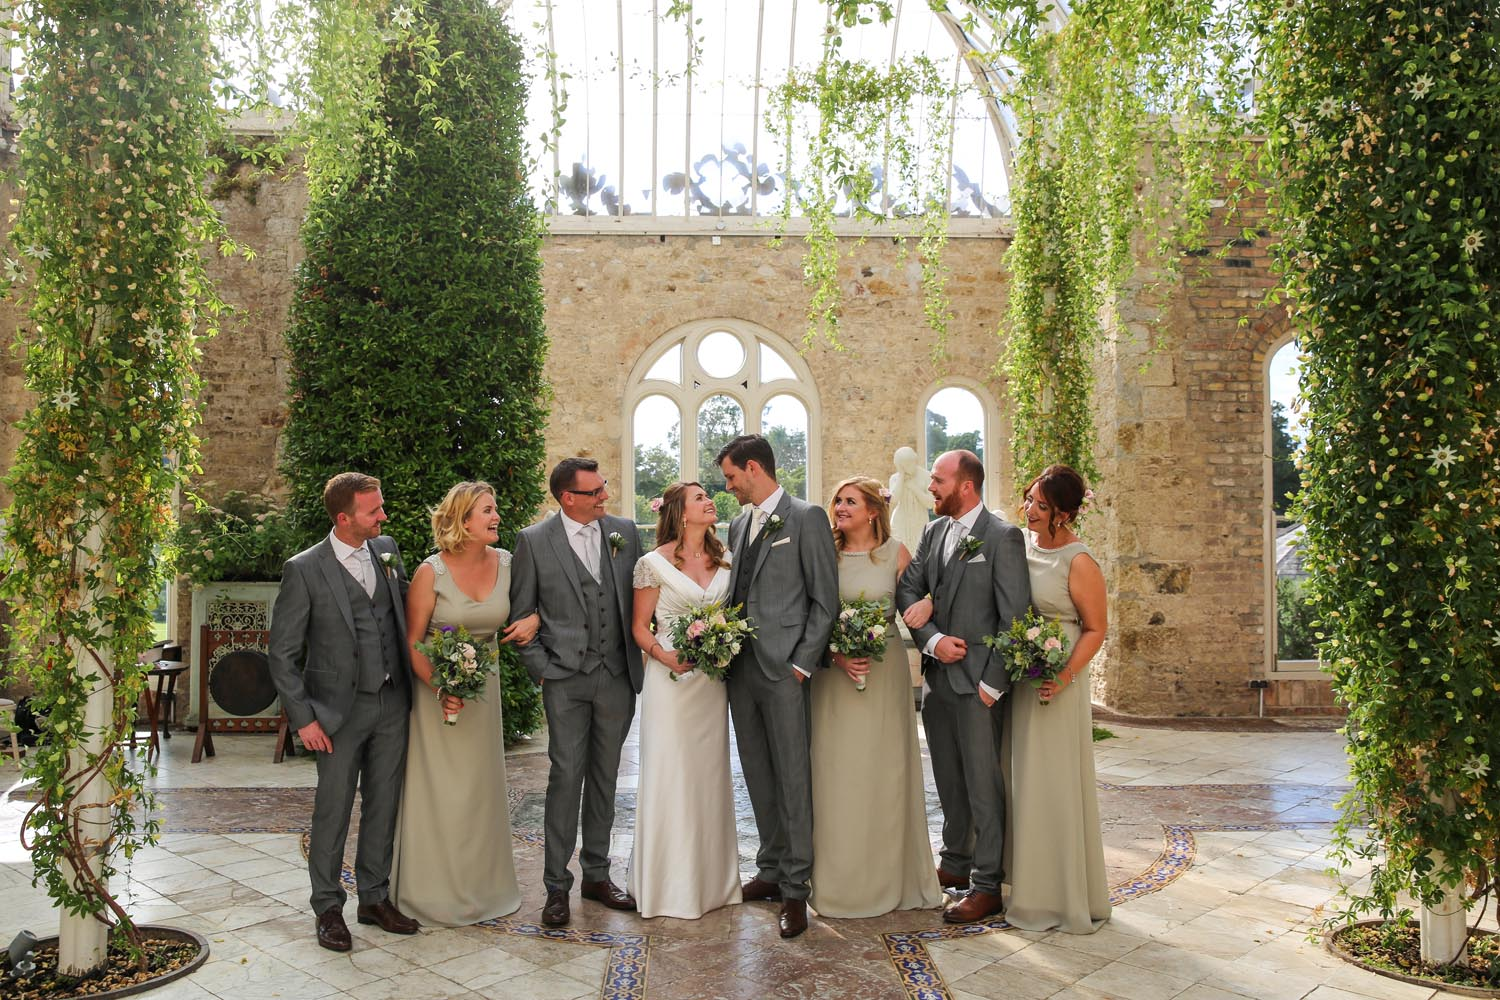 Photos of the wedding party in The Orangery, Killruddery House